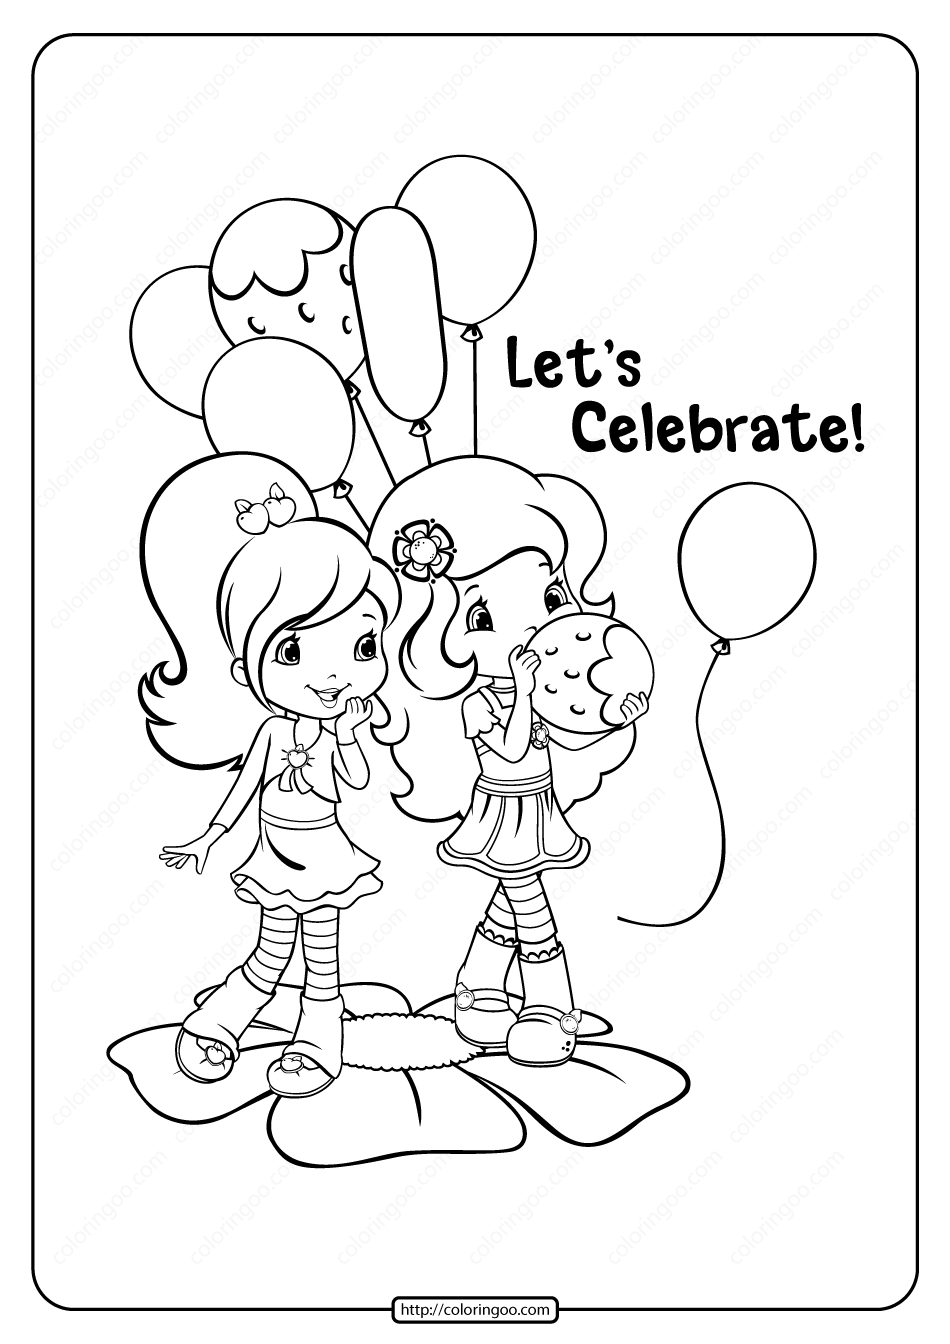 strawberry shortcake coloring games strawberry shortcake for kids strawberry shortcake kids coloring games shortcake strawberry